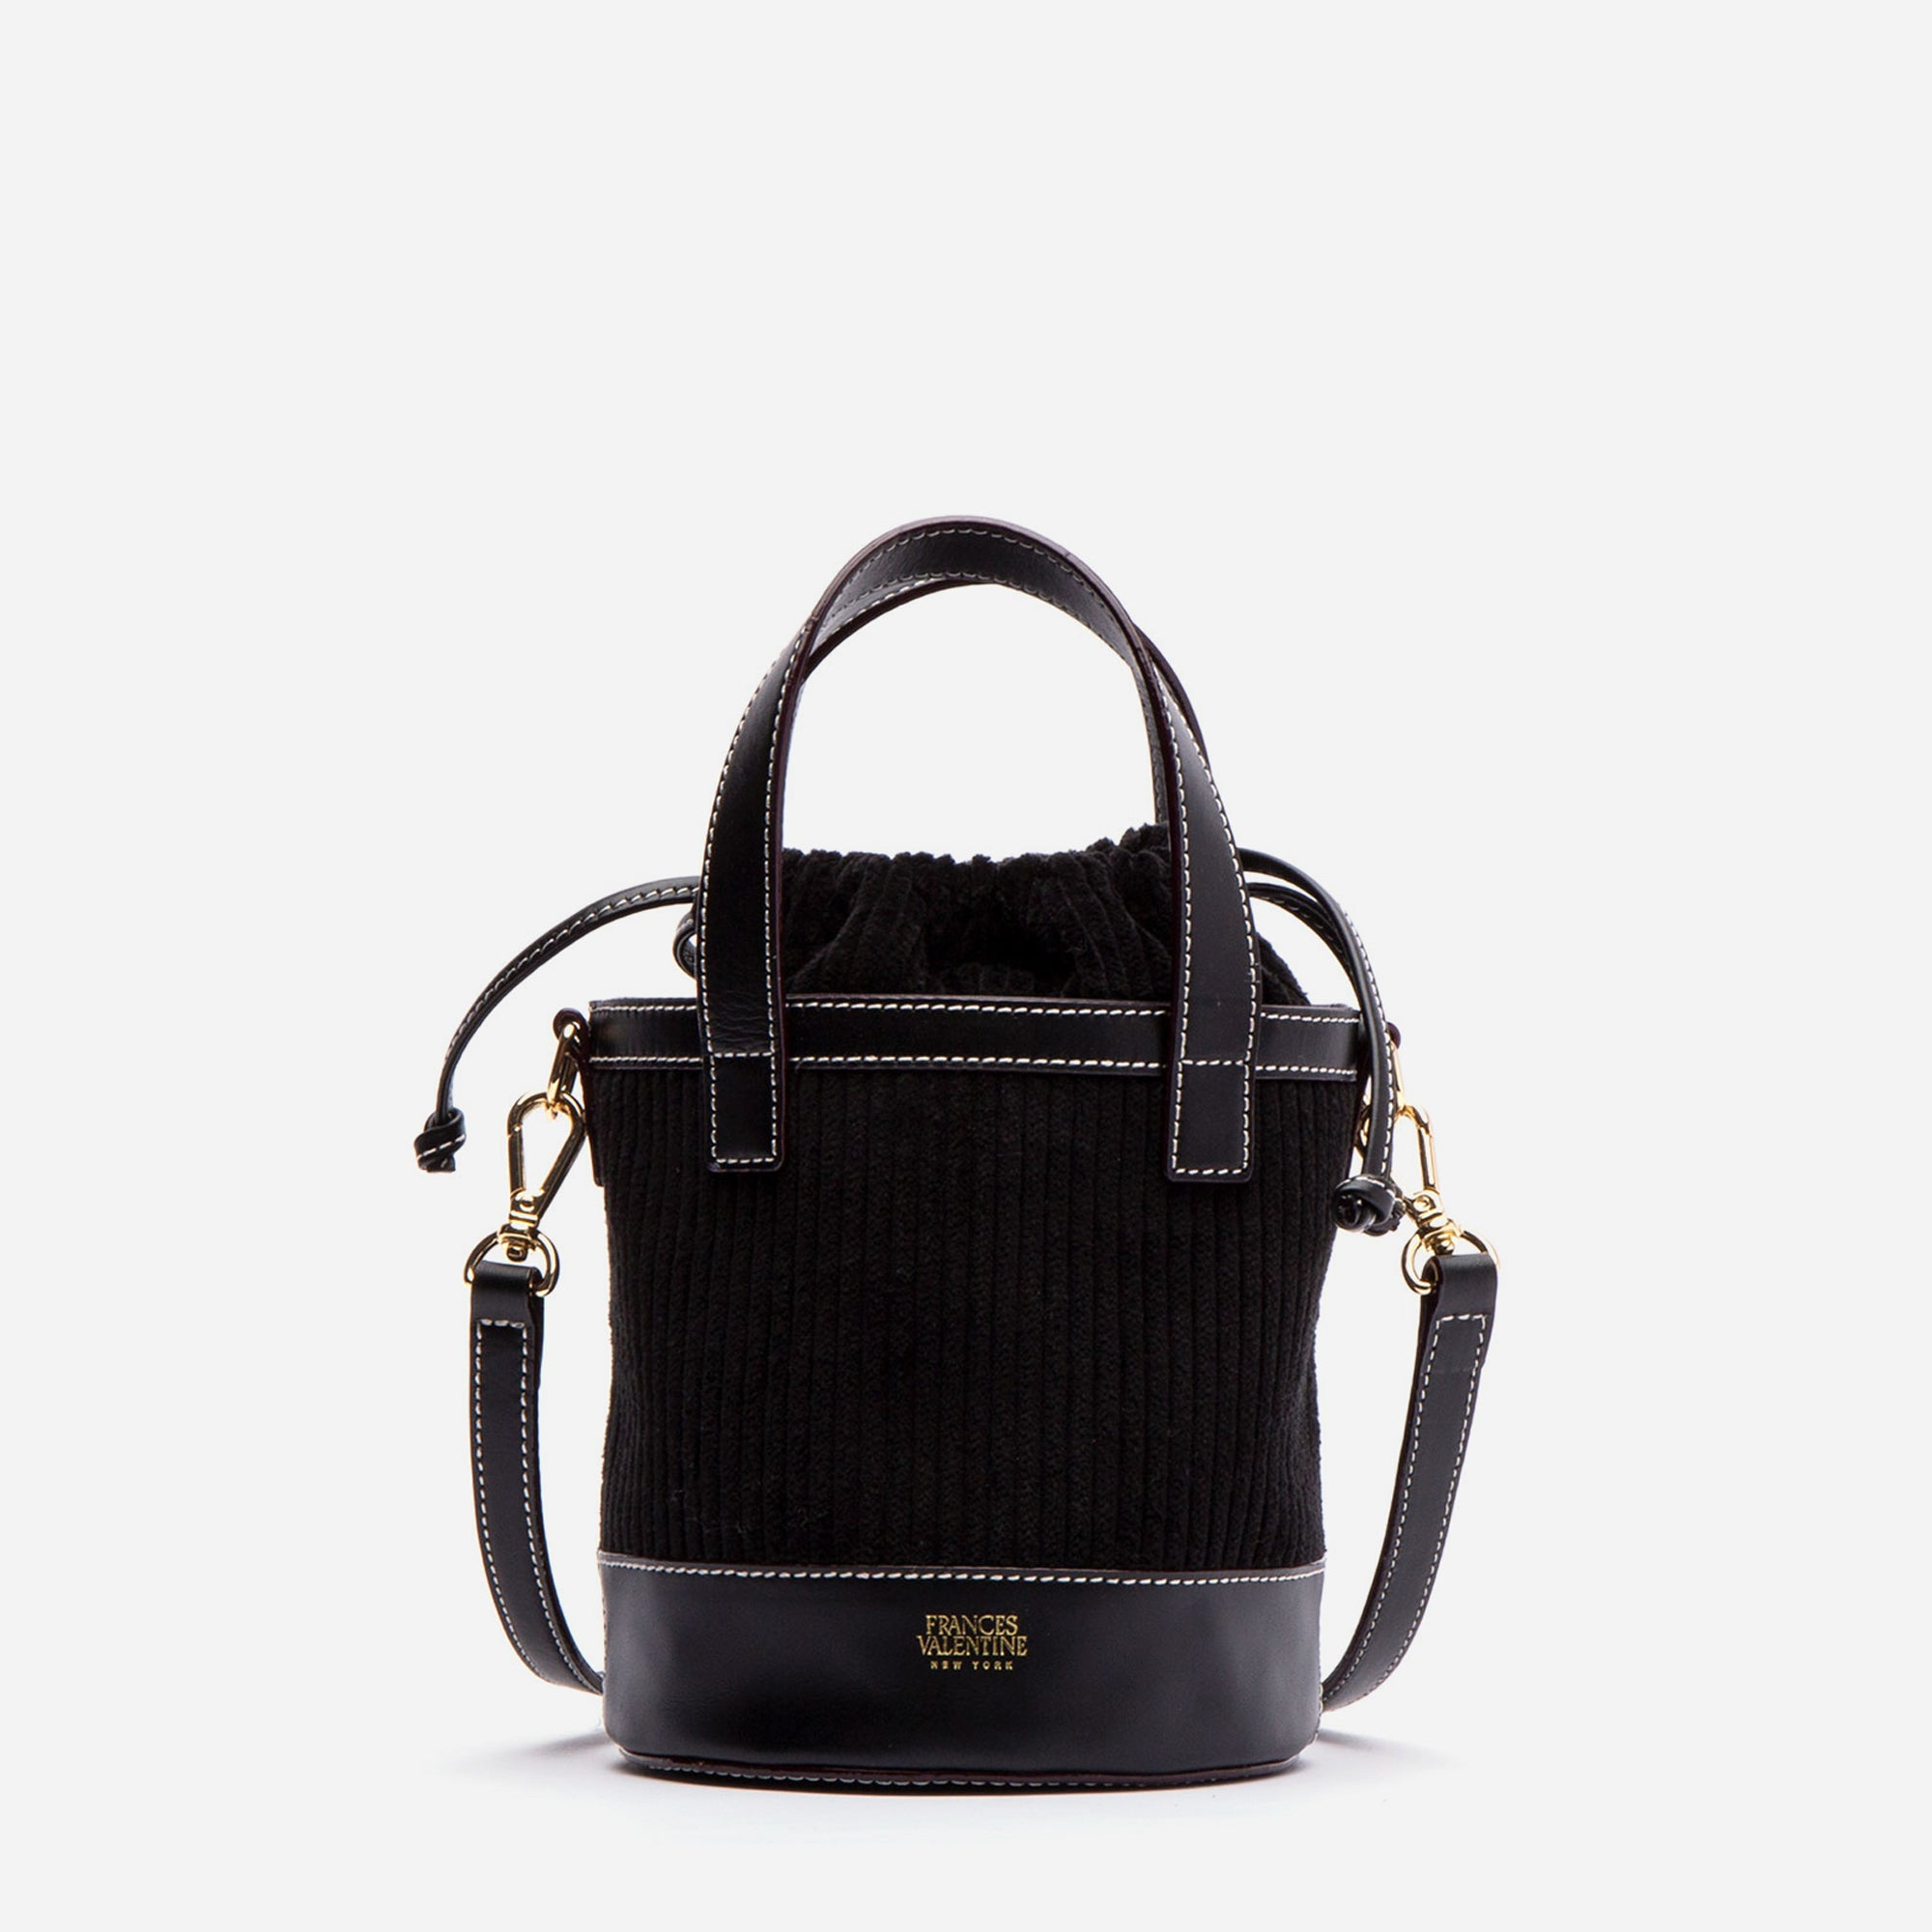 Small Corduroy Bucket Bag Black - Frances Valentine